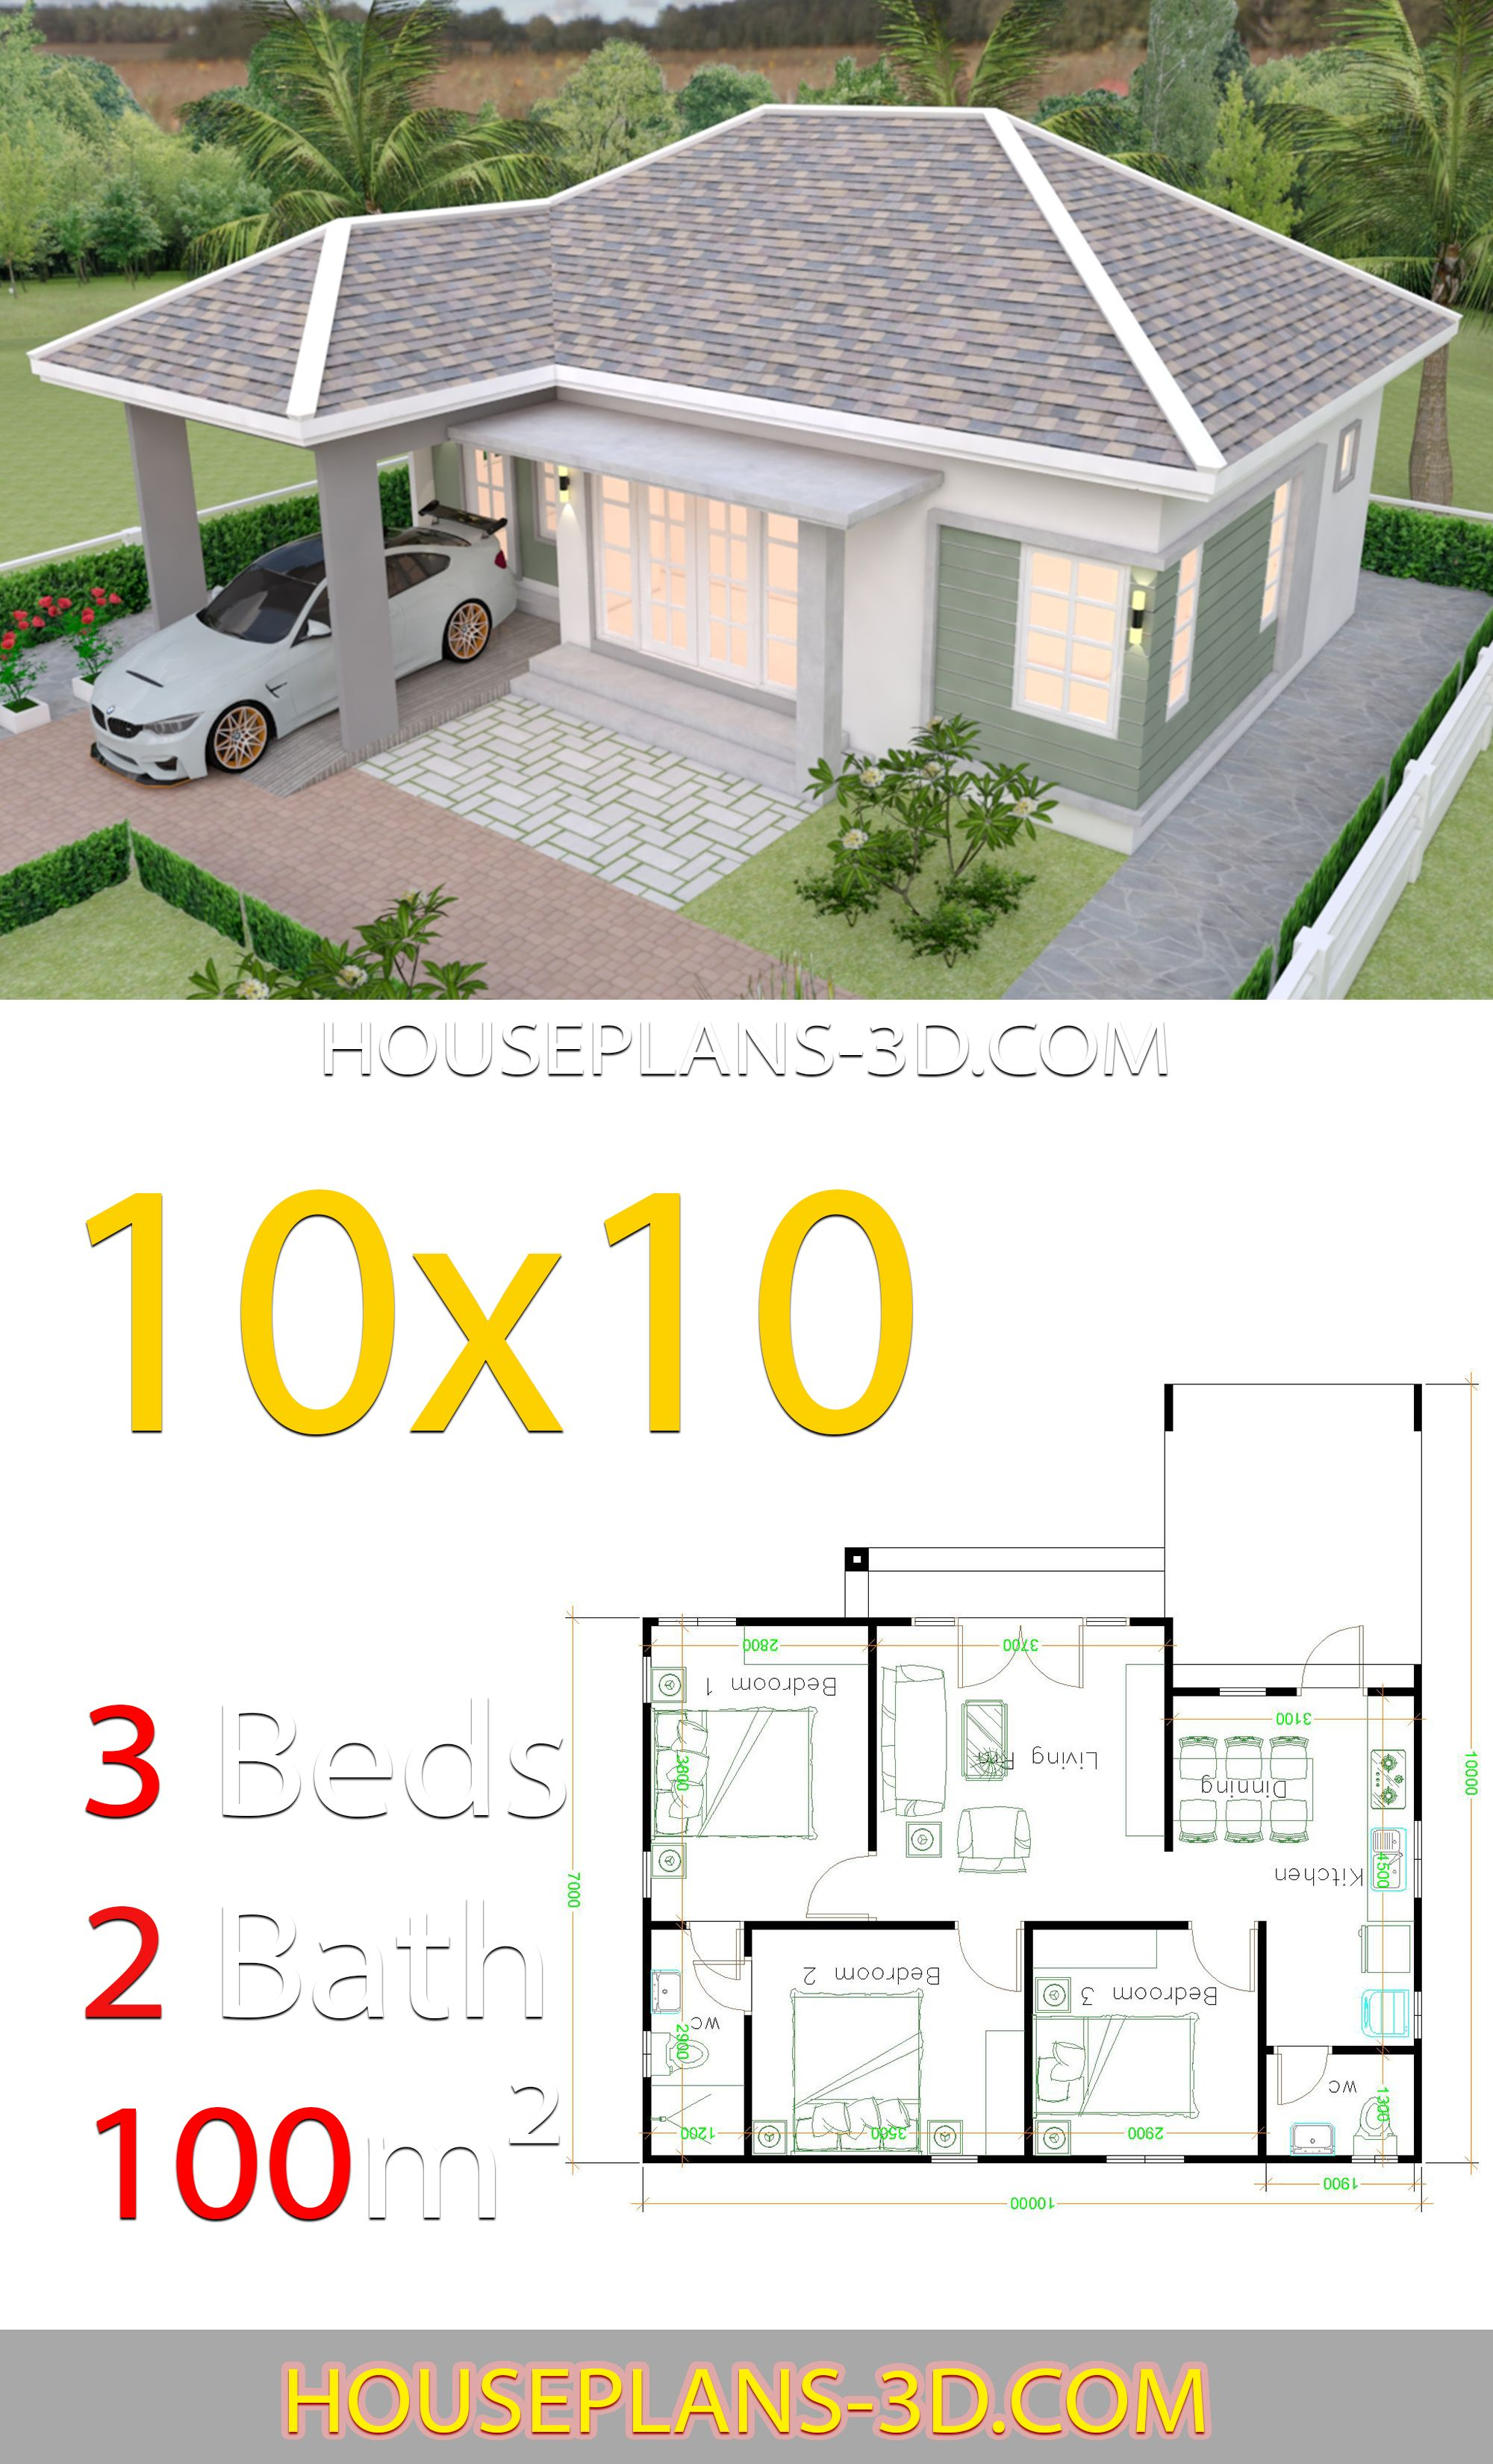 Interior House Design Plans 10x10 With 3 Bedrooms Full Plans House Plans 3d In 2020 Simple House Design Affordable House Plans House Plan Gallery